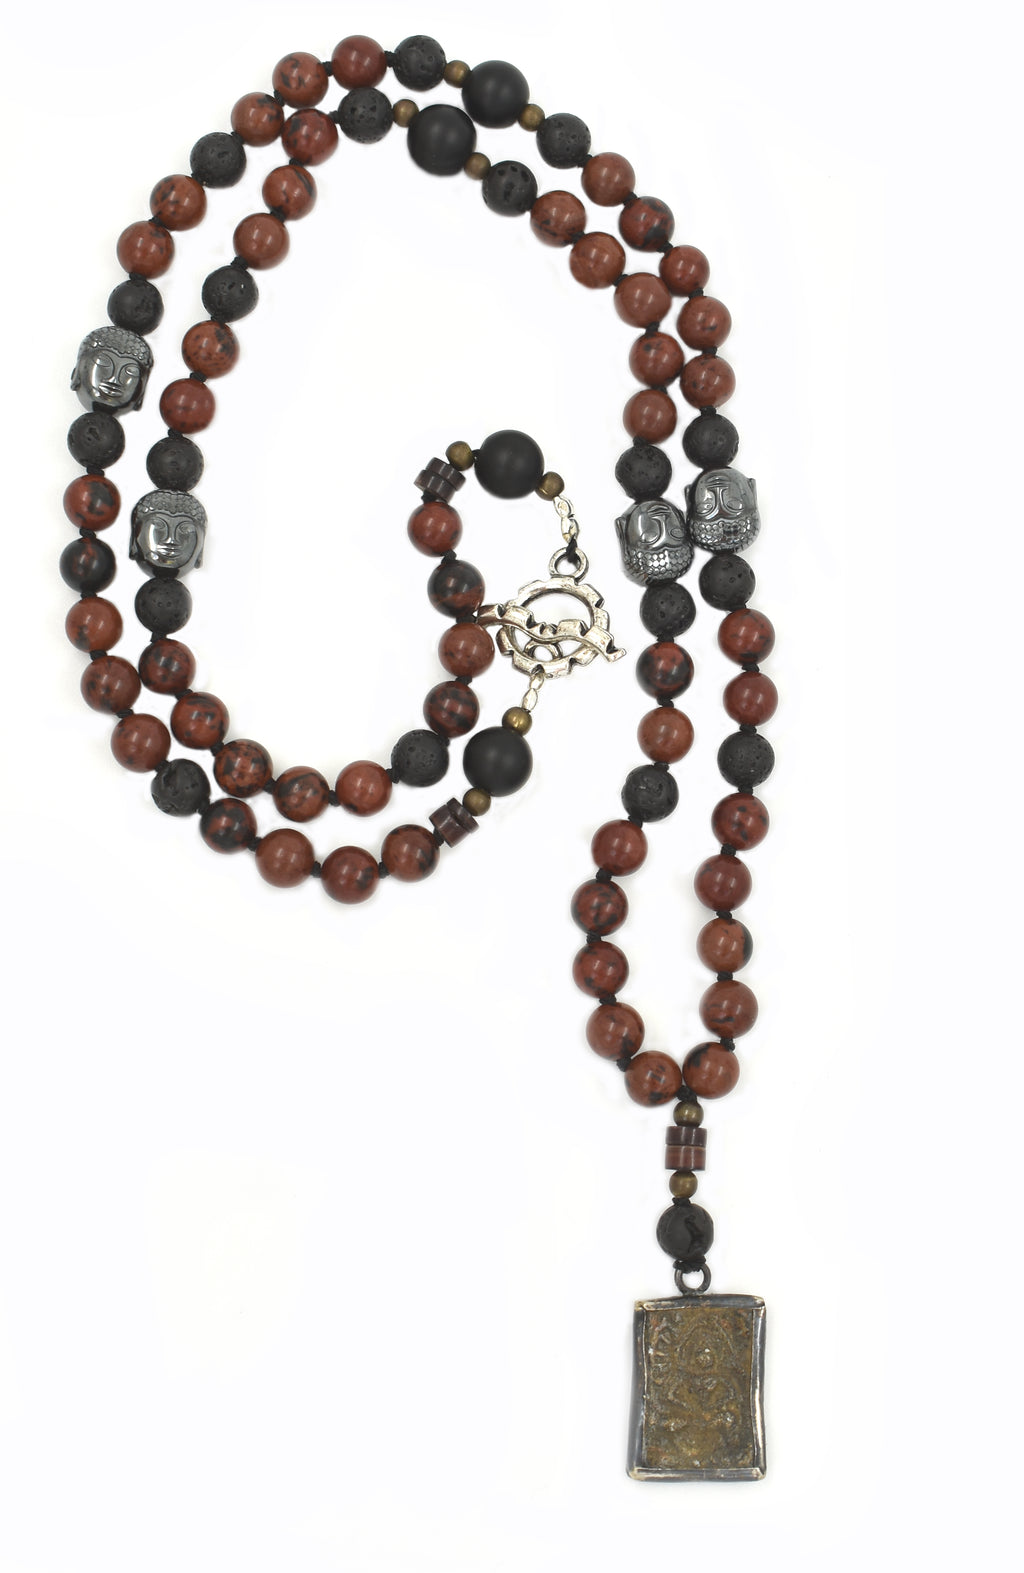 Buddha's Radiance Necklace